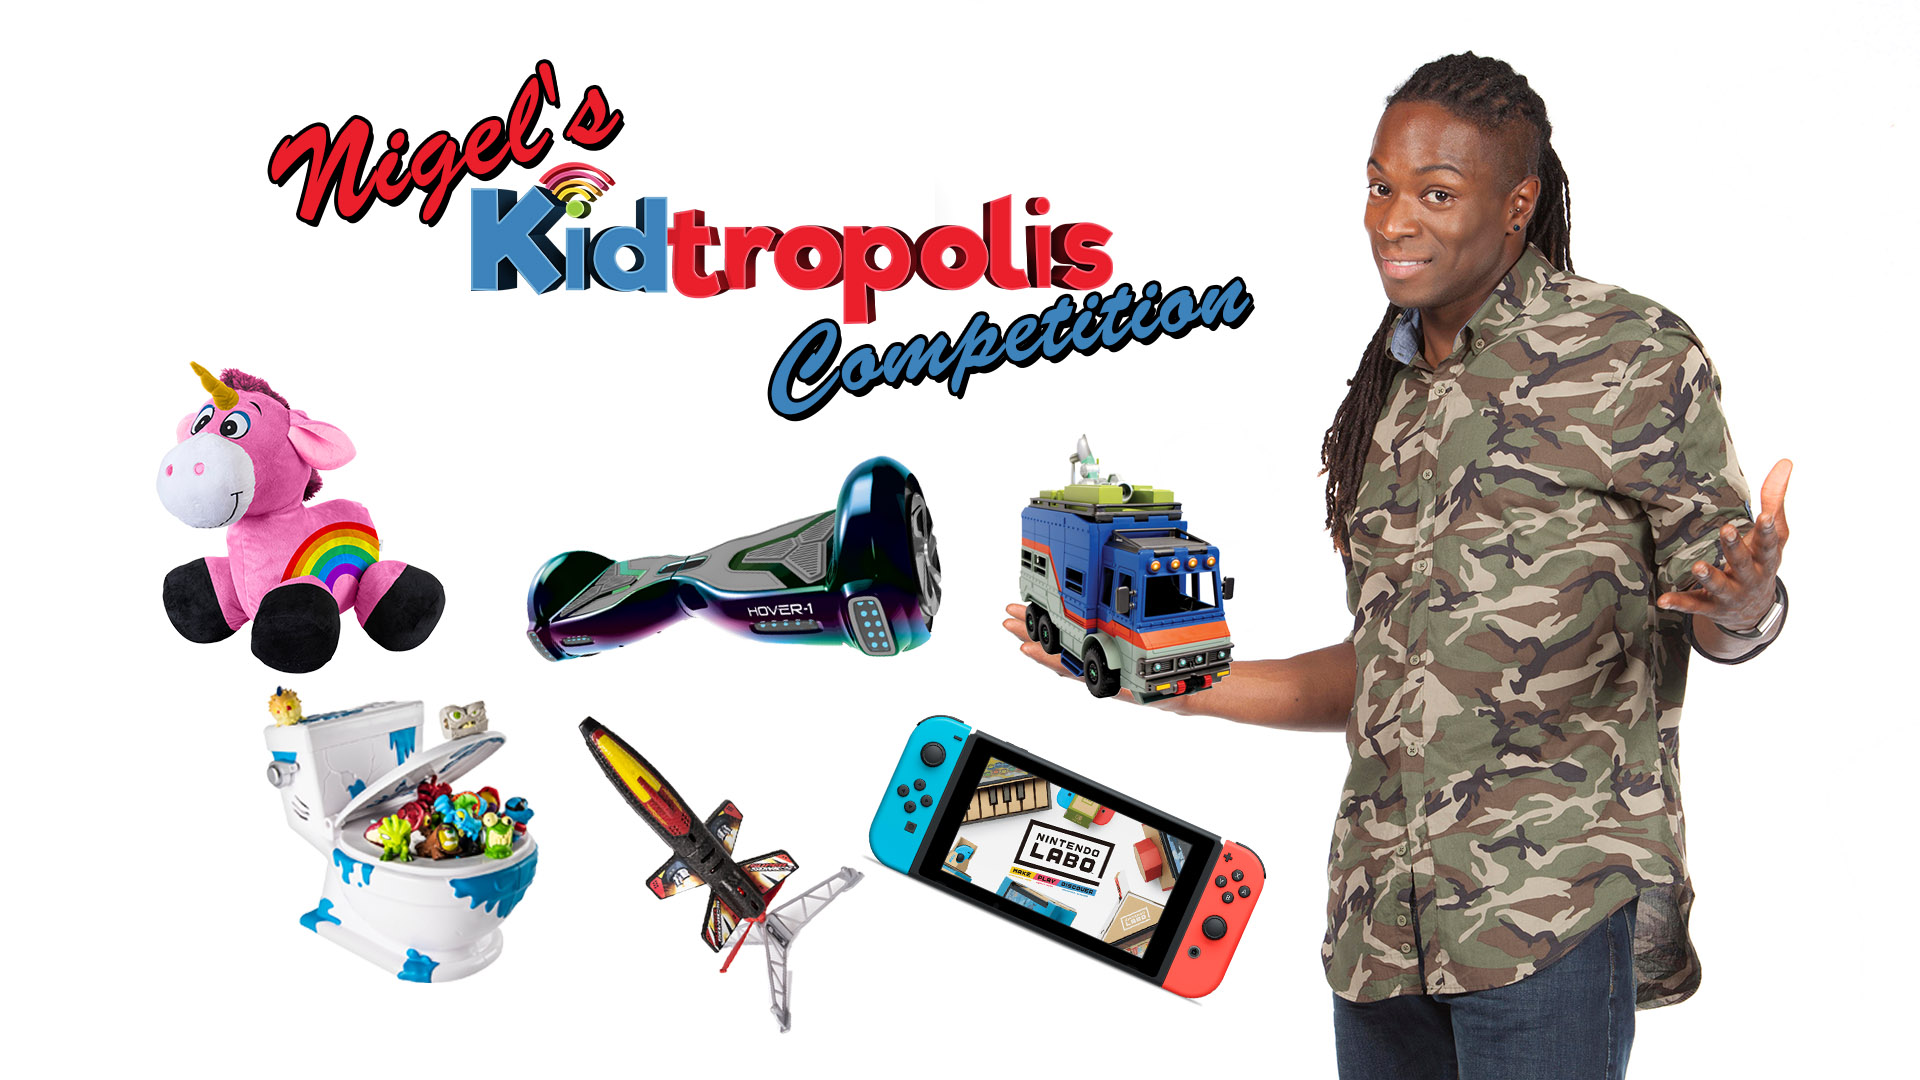 Nigel's Kidtropolis Toy Competition